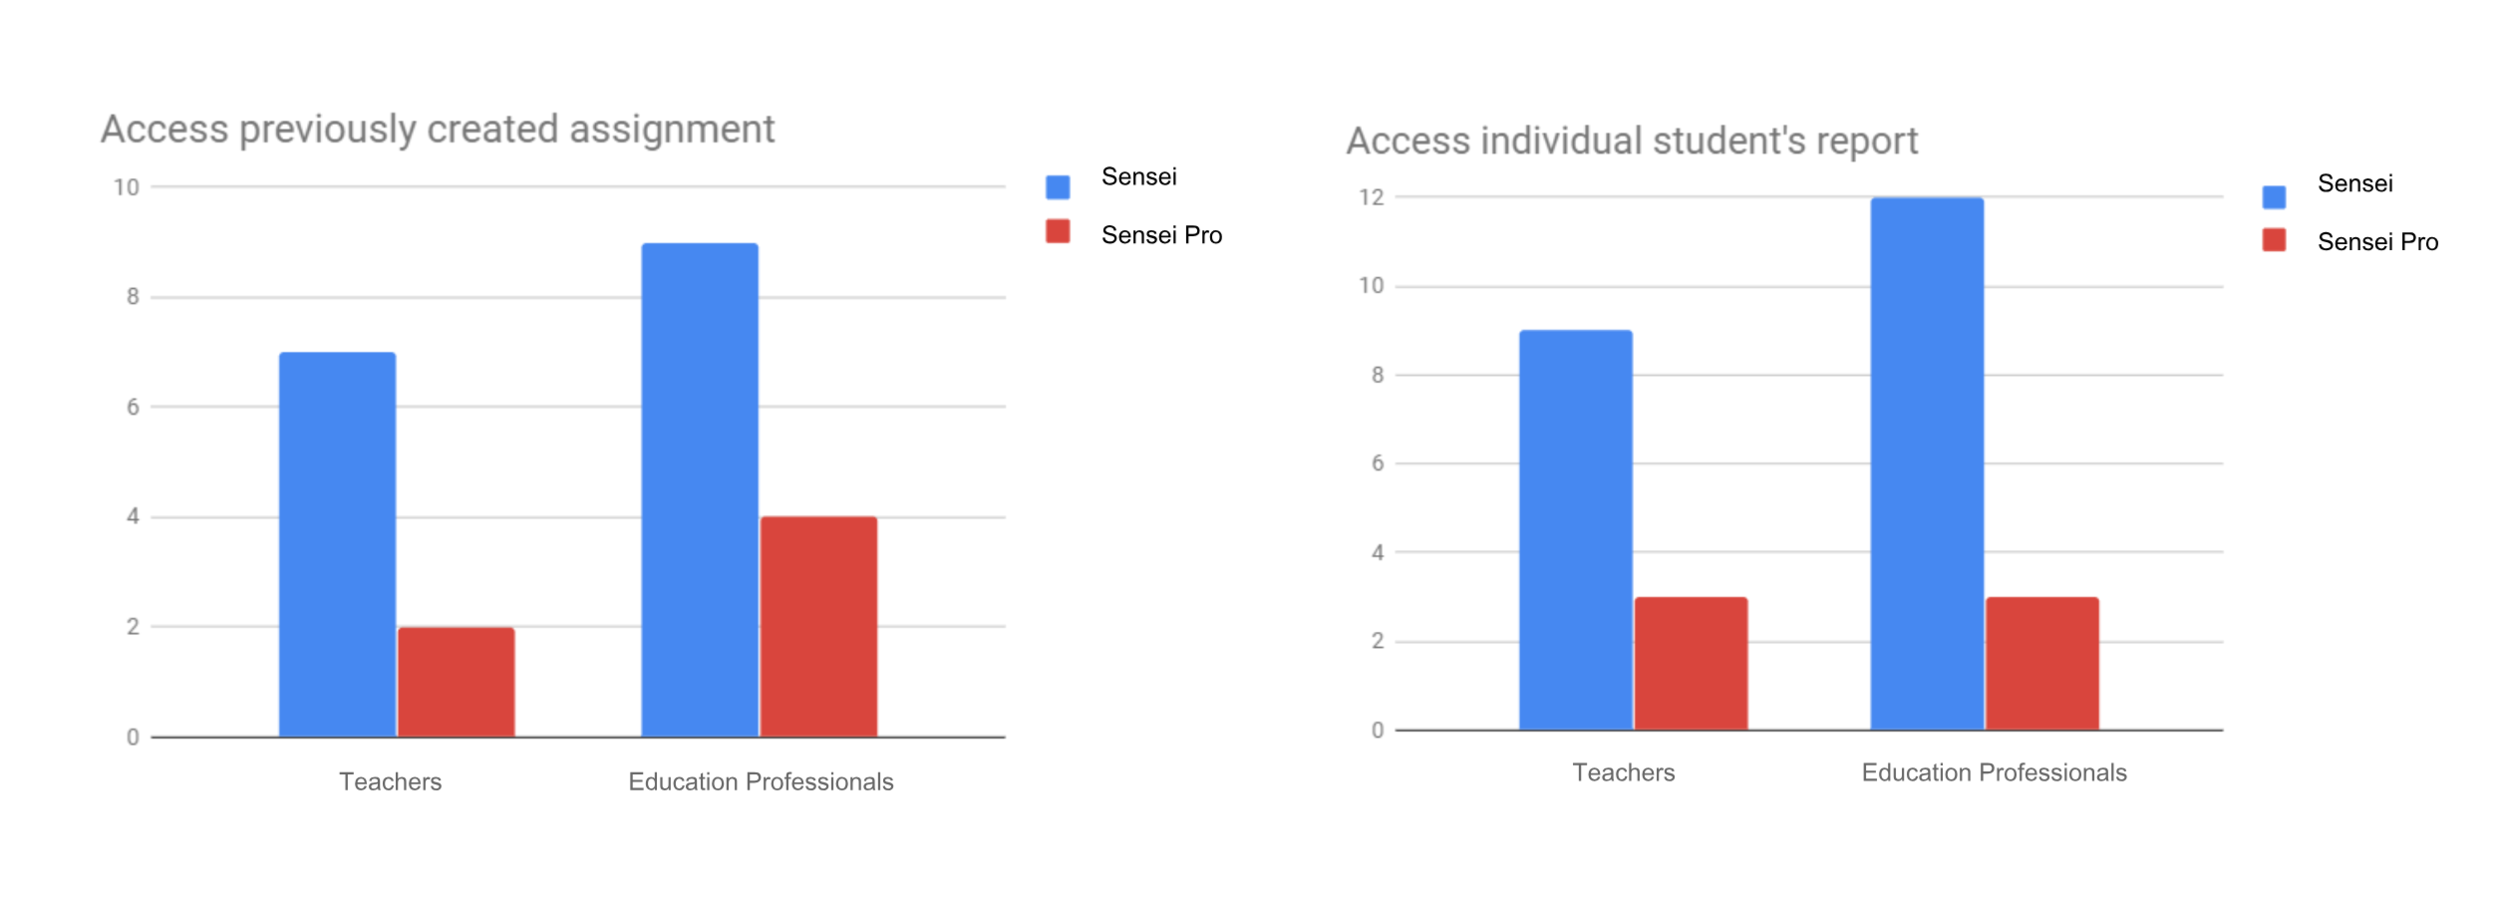 Number of clicks from teachers and education professionals when performing task 1: accessing a previously created assignment, and task 3: accessing a student's individual data report